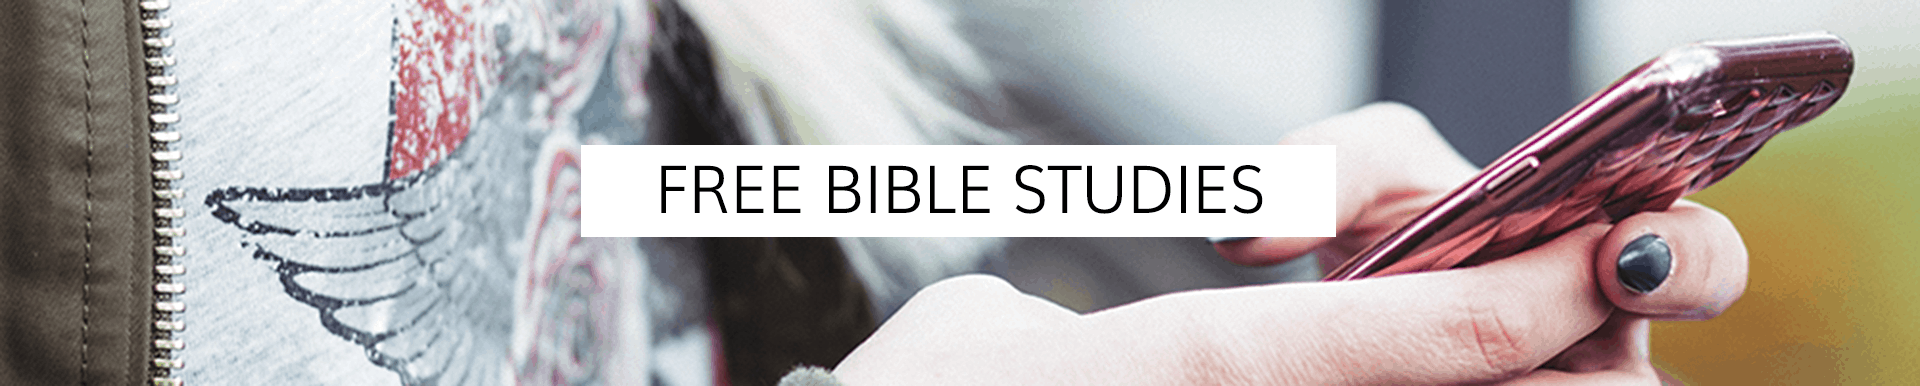 Free Bible Studies | Living by Design Ministries with Sarah Koontz